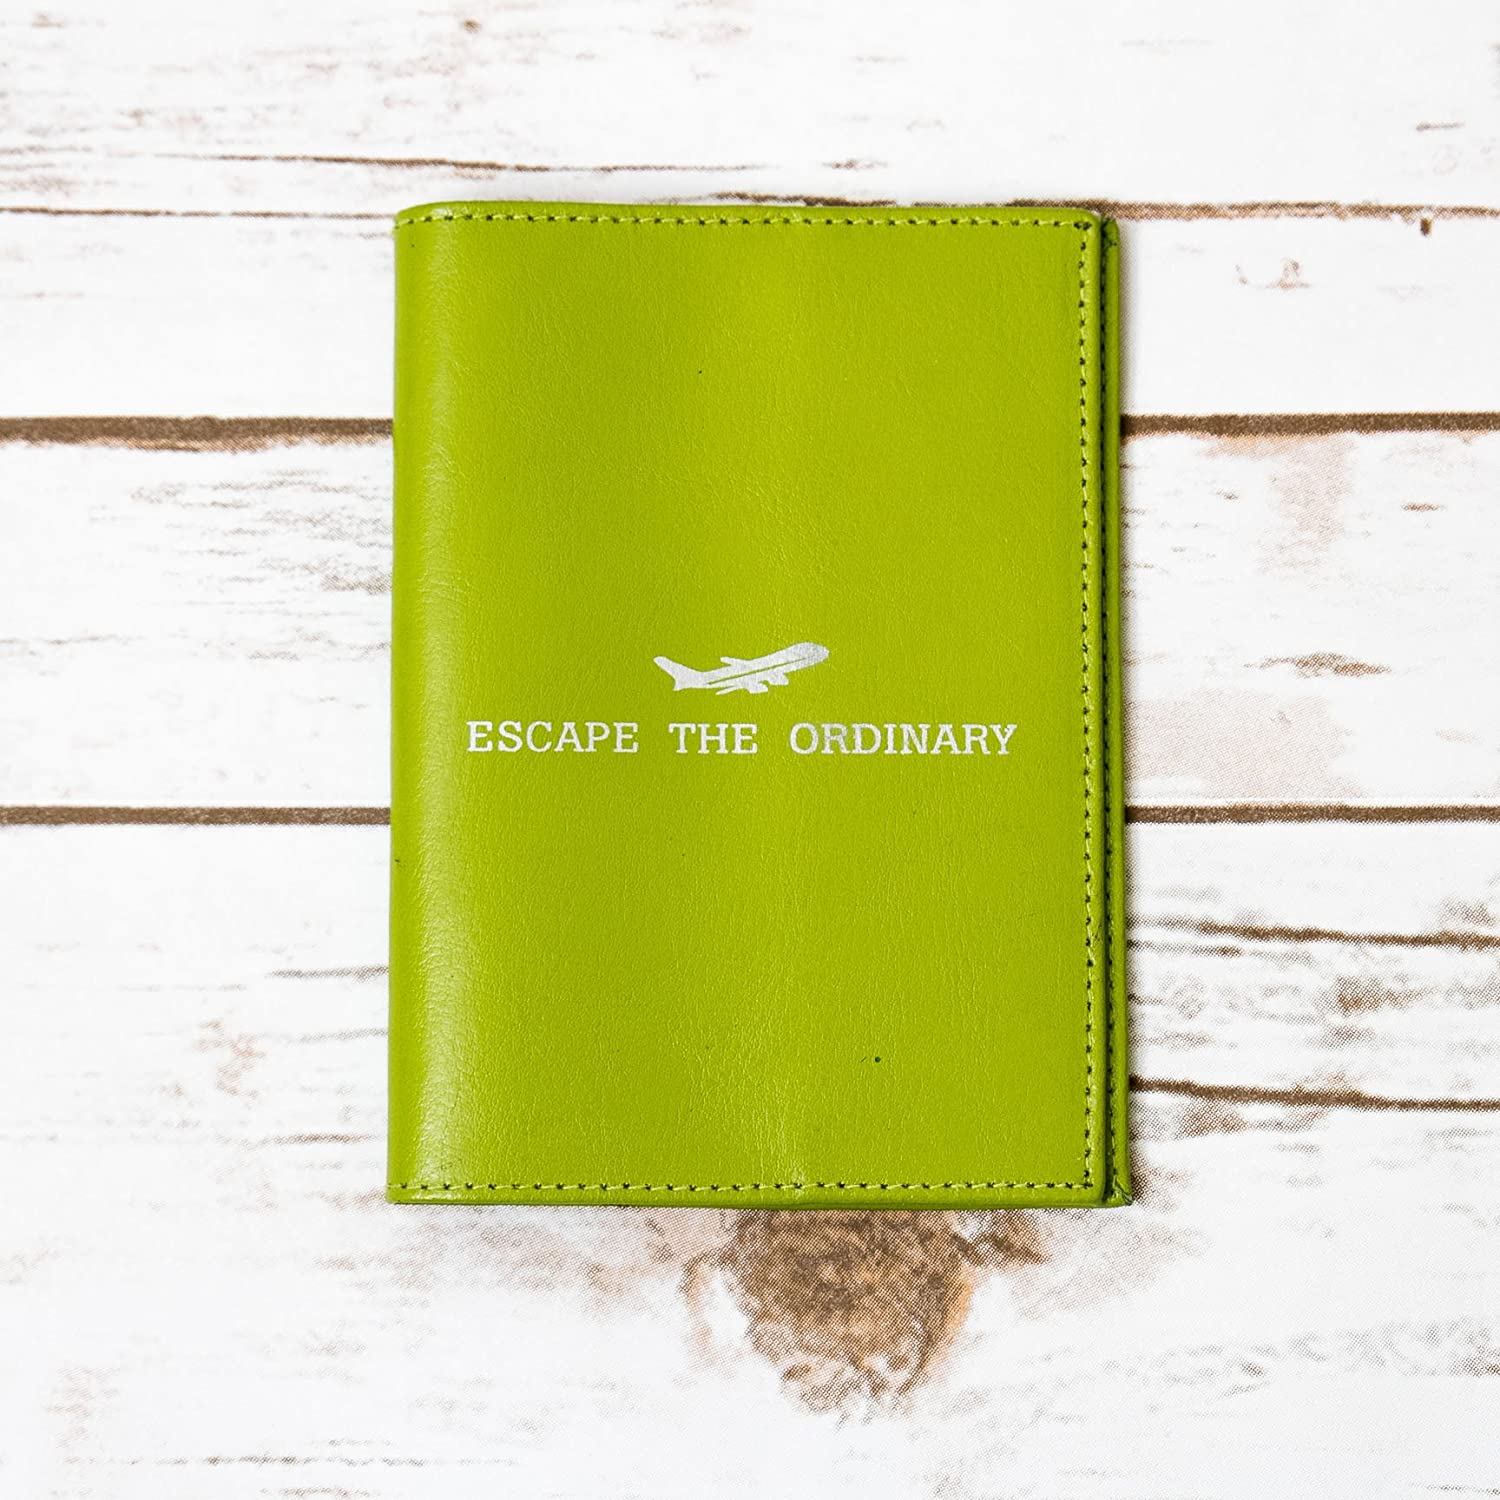 Escape The Ordinary Genuine Leather Passport Cover, Travel Accessories, Travel Wallet, Genuine Leather case cover - Securely Holds Passport, Business Cards, Credit Cards, Boarding Passes